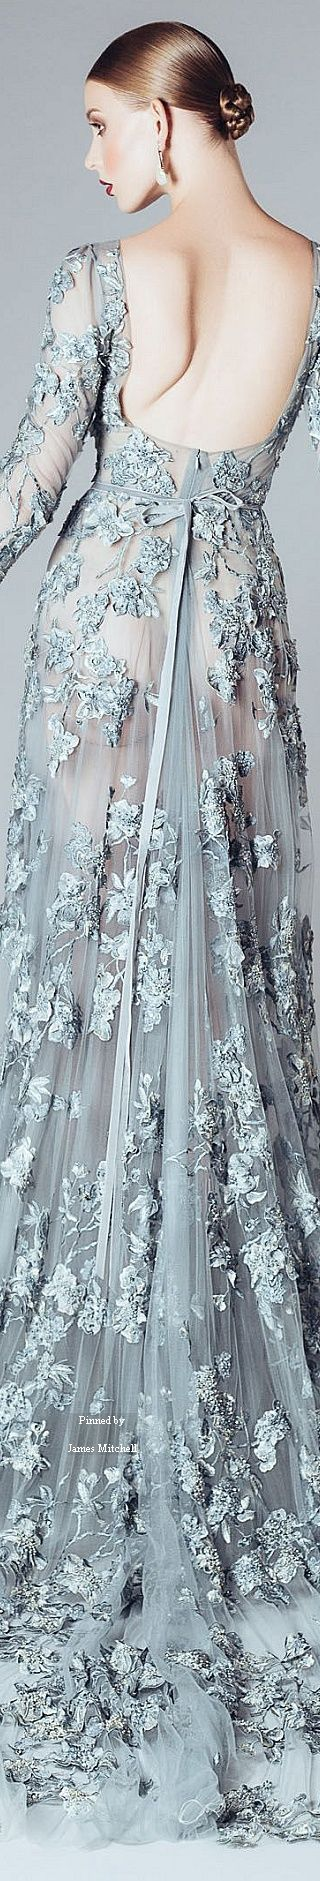 Alfazairy ~ Couture Silver Grey Applique Open Back Gown, FW 2015-16